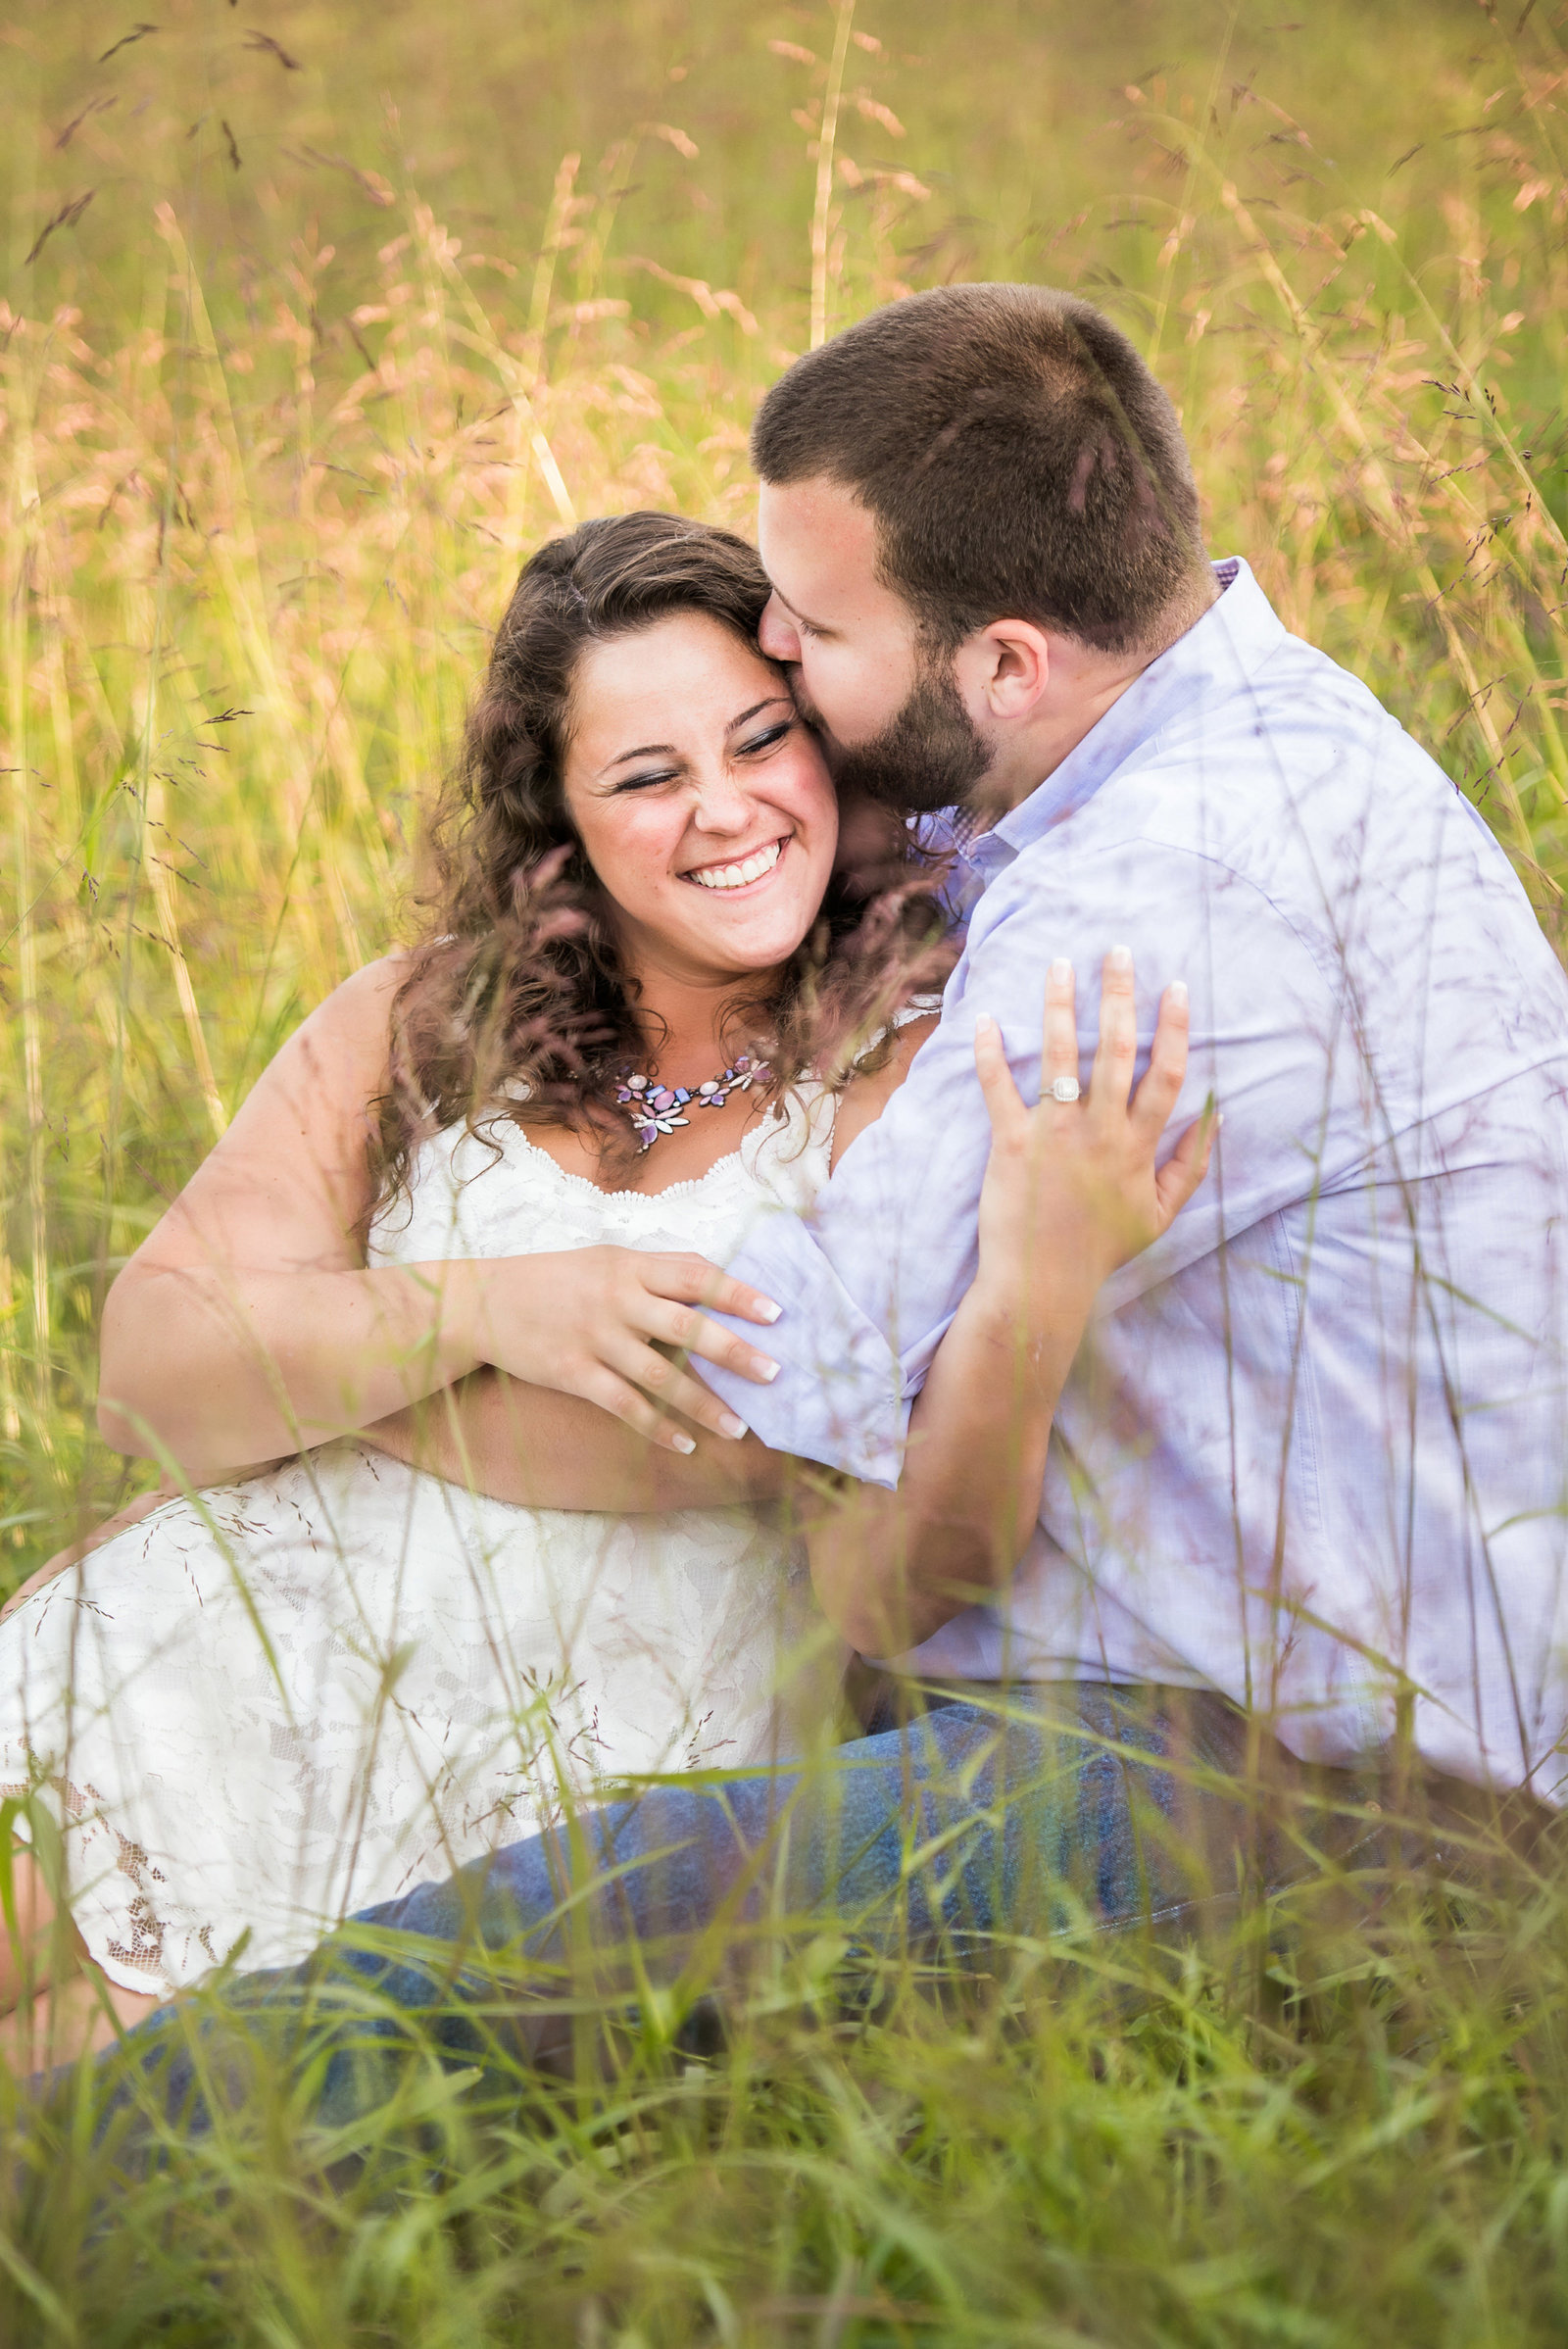 NJ_Rustic_Engagement_Photography026